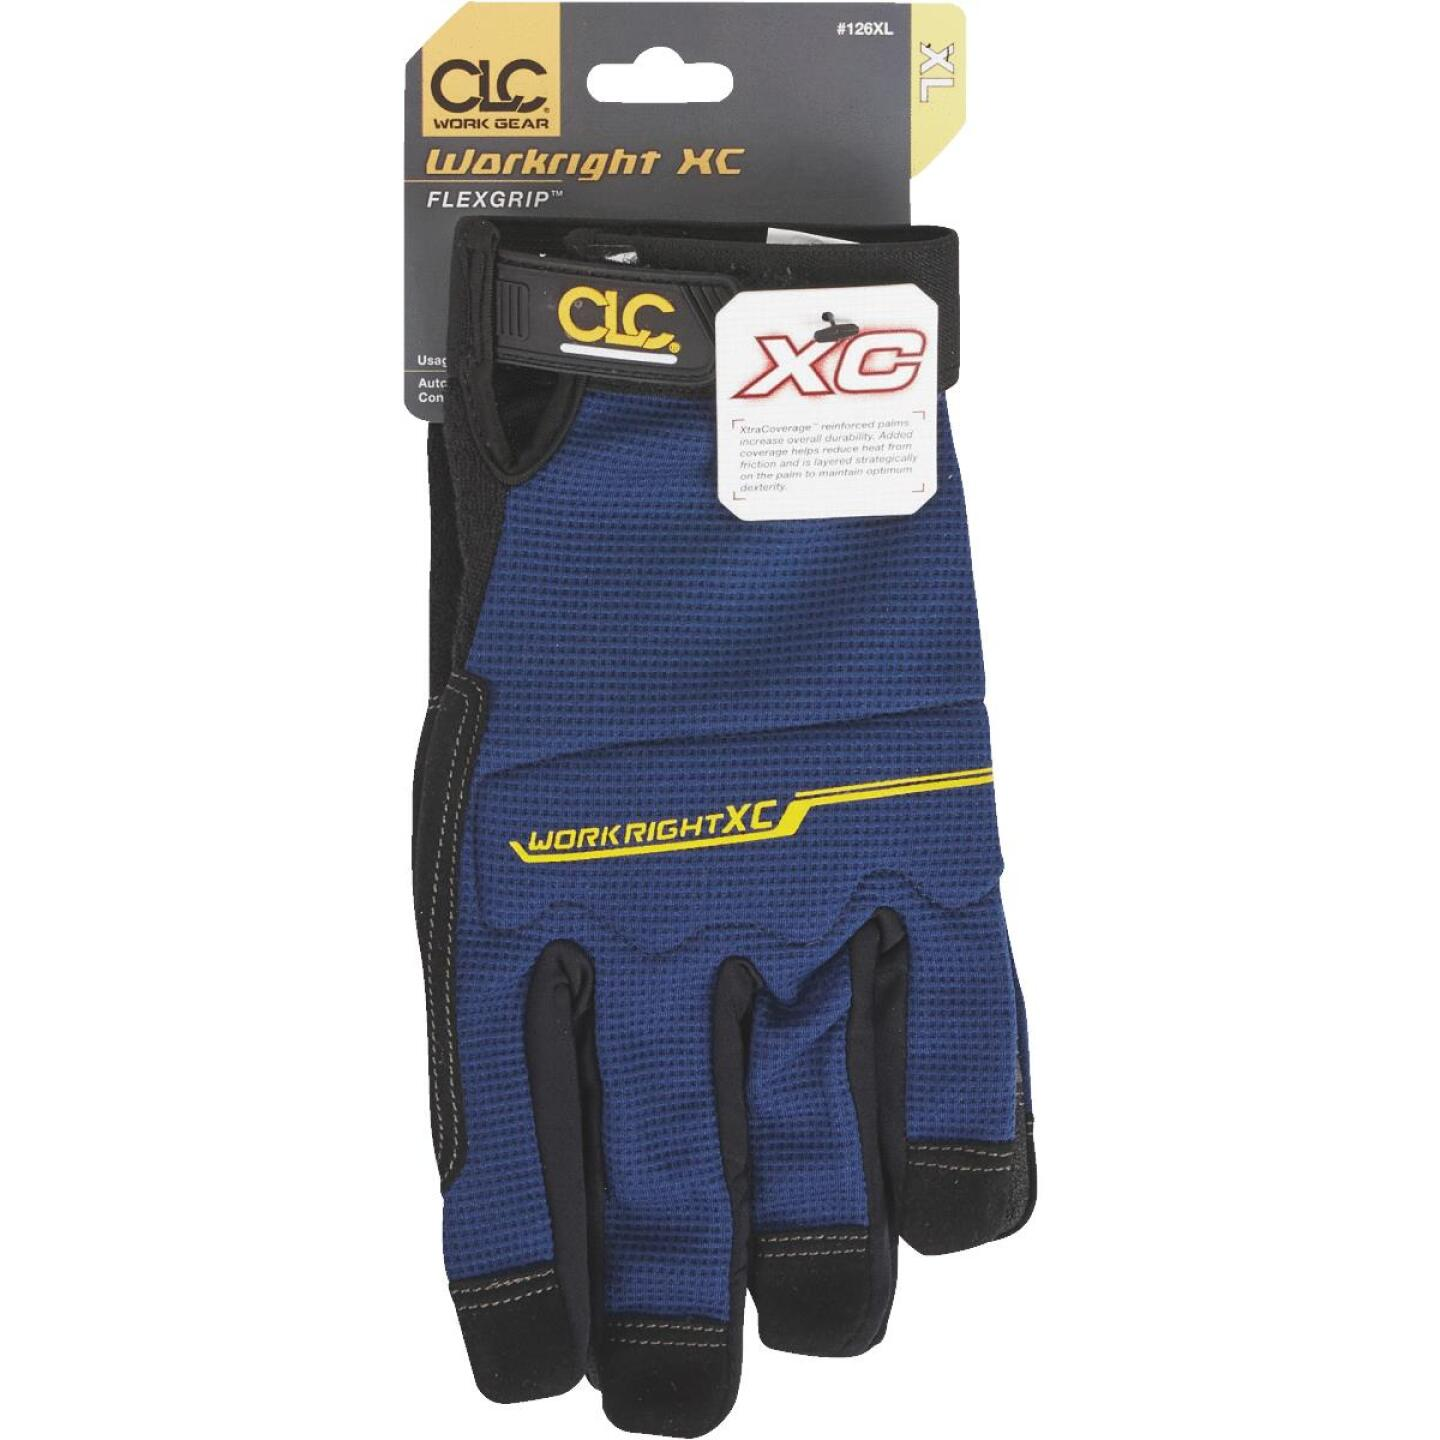 CLC Workright XC Men's XL Synthetic Leather Flex Grip High Performance Glove Image 2